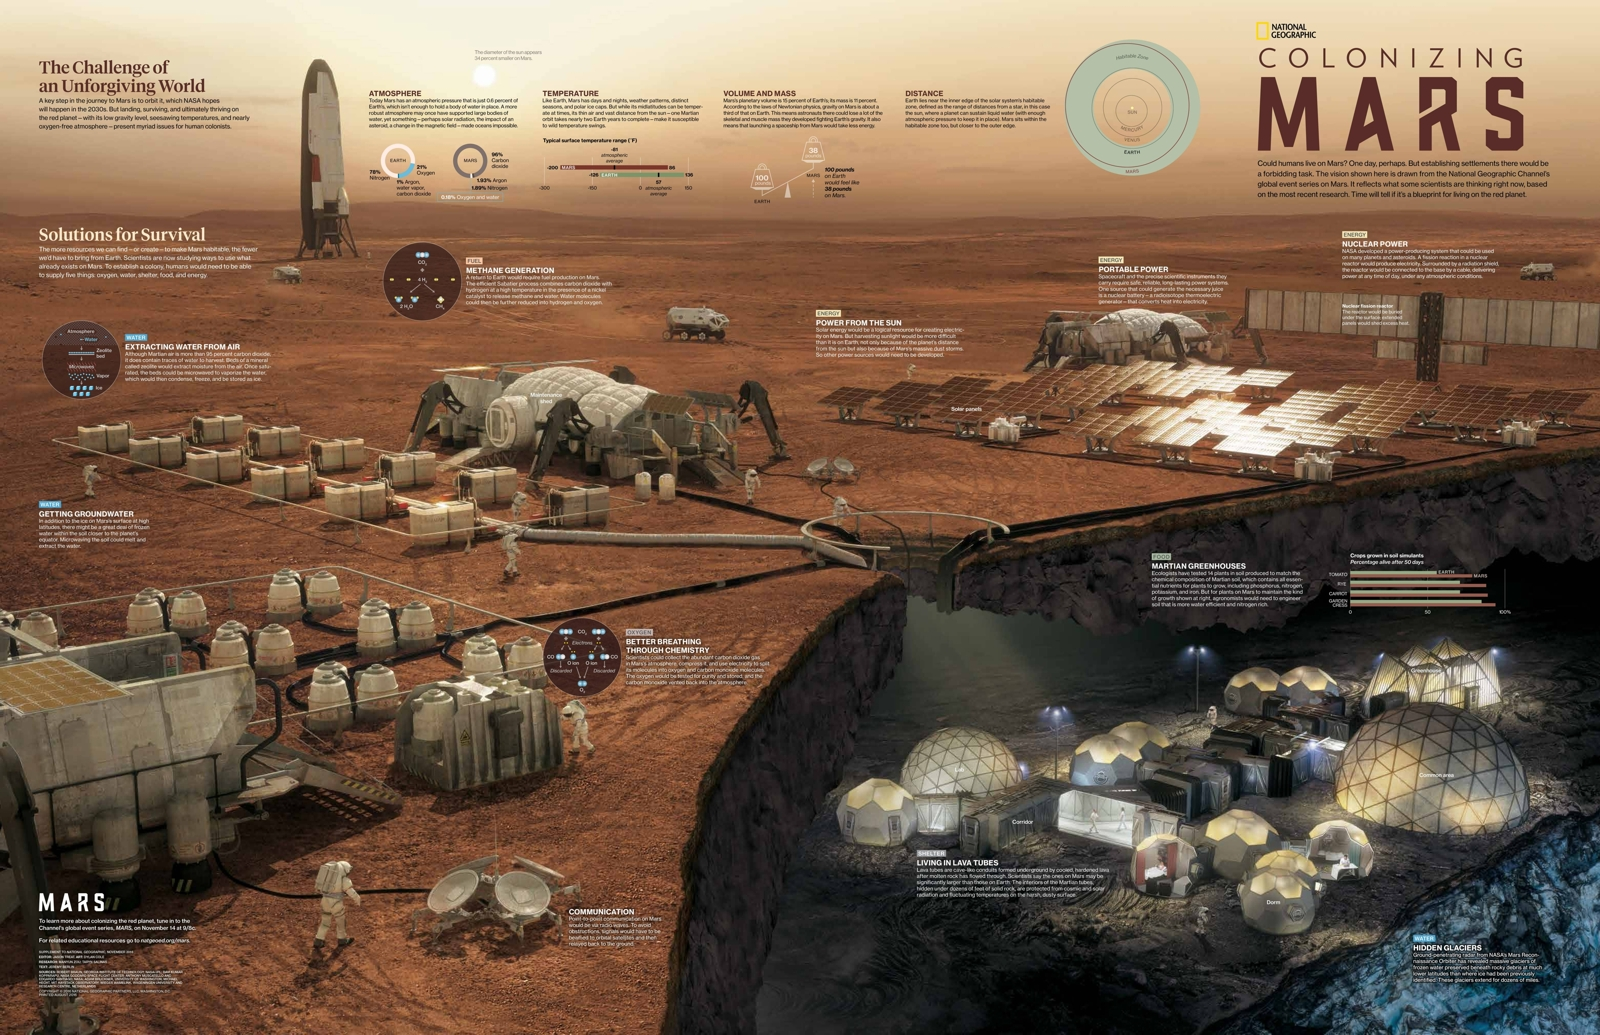 Mars base infographic by National Geographic